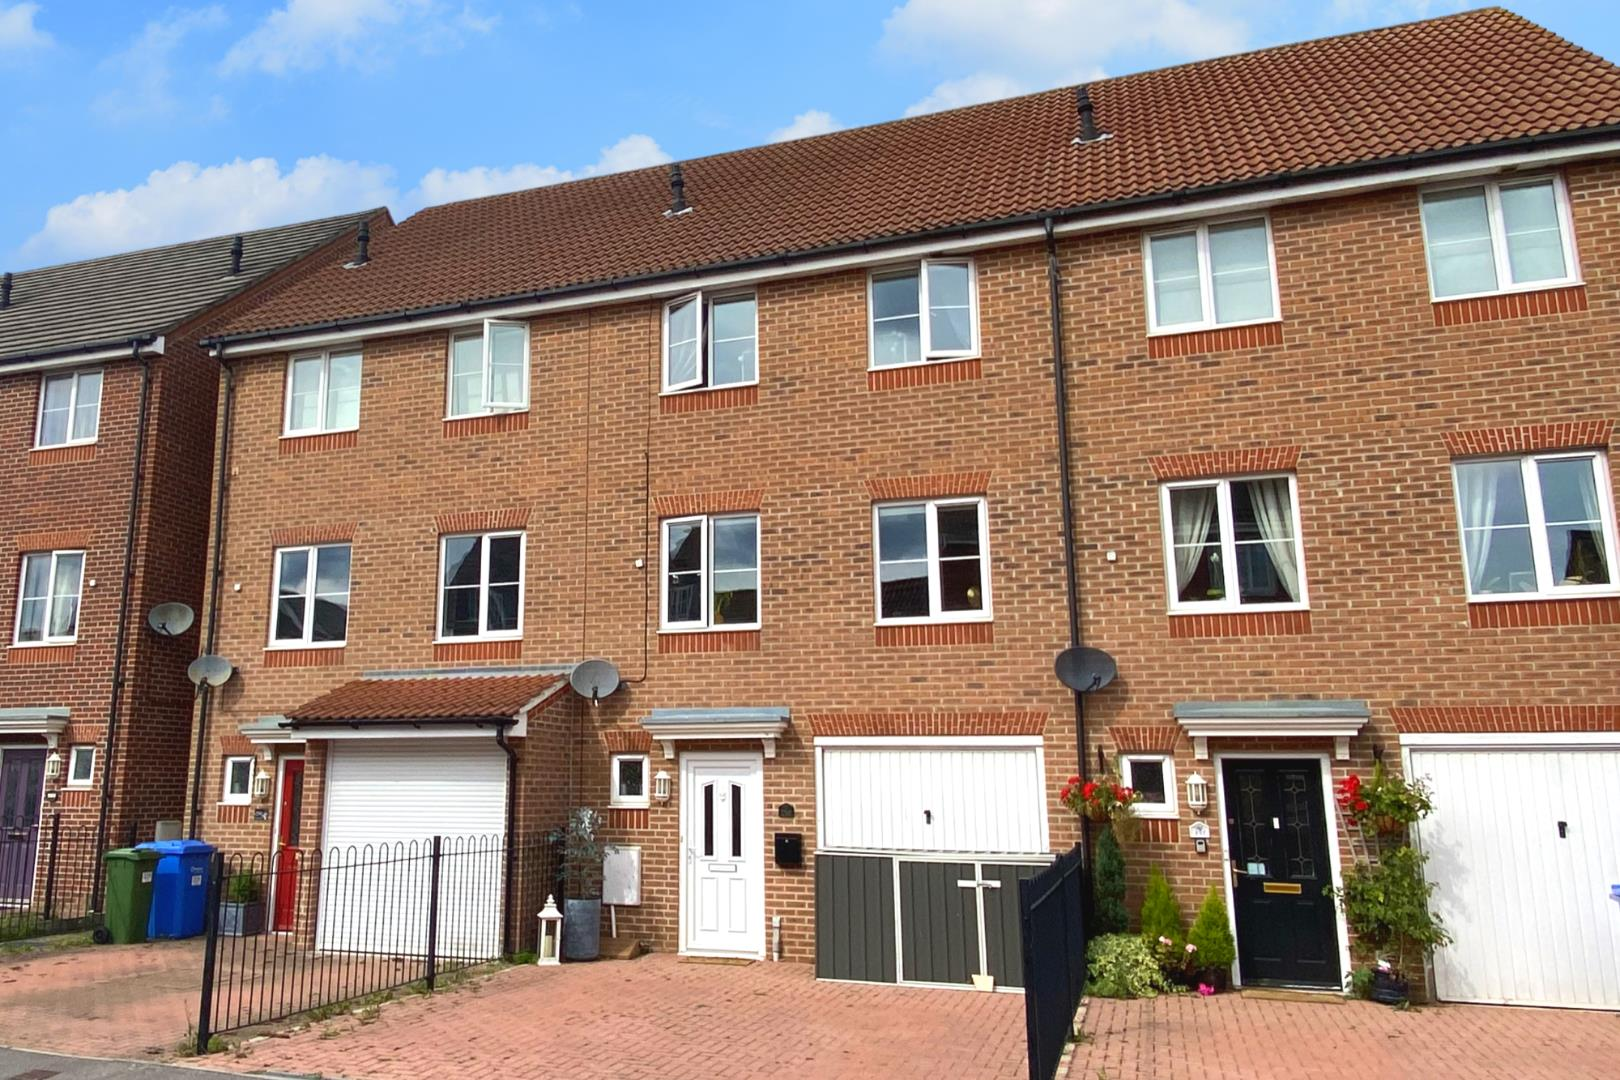 4 bed town house for sale 1